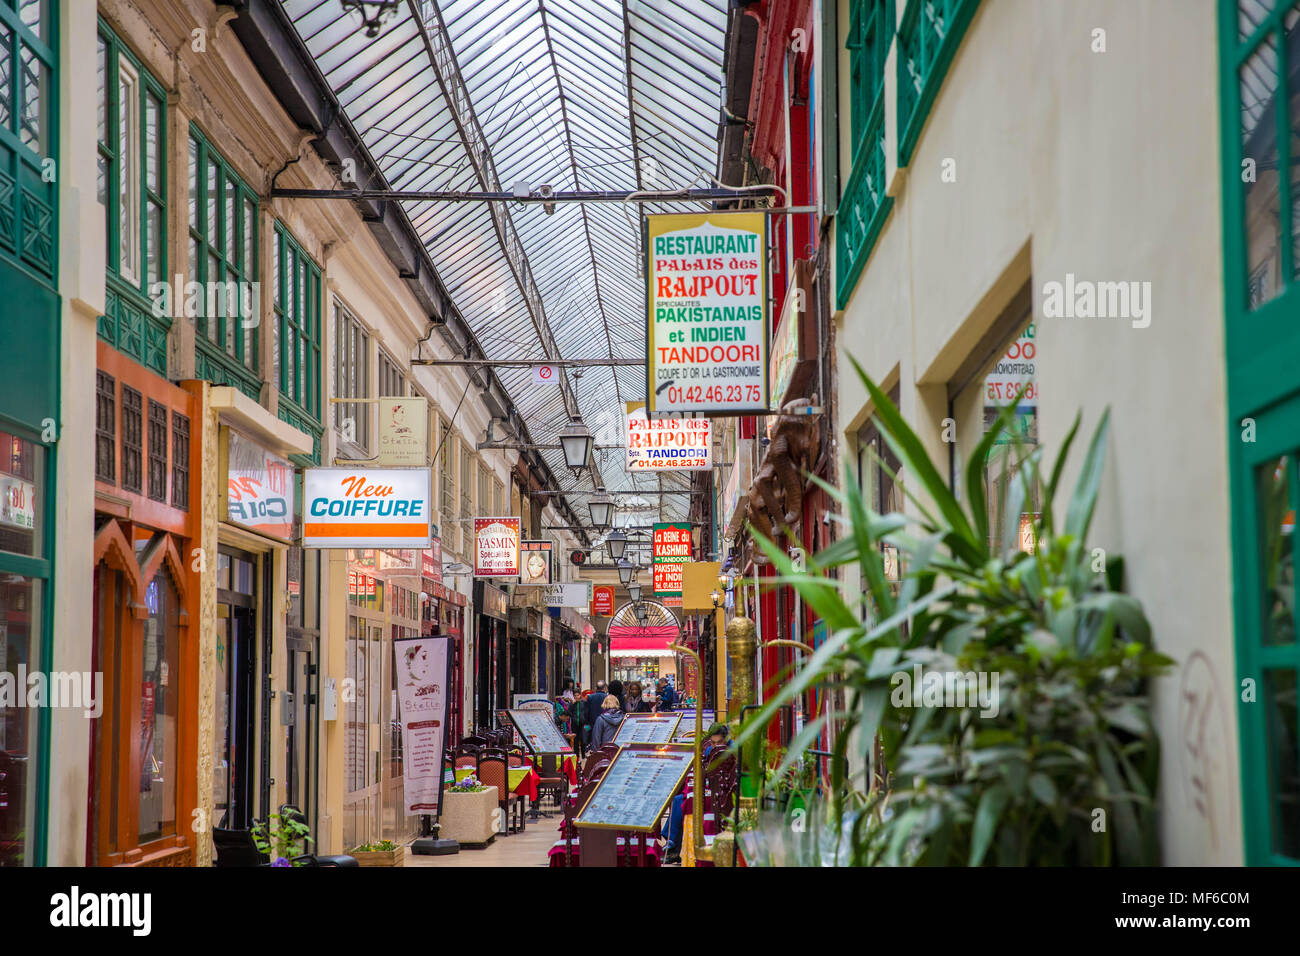 Passage Brady, Paris - Stock Image